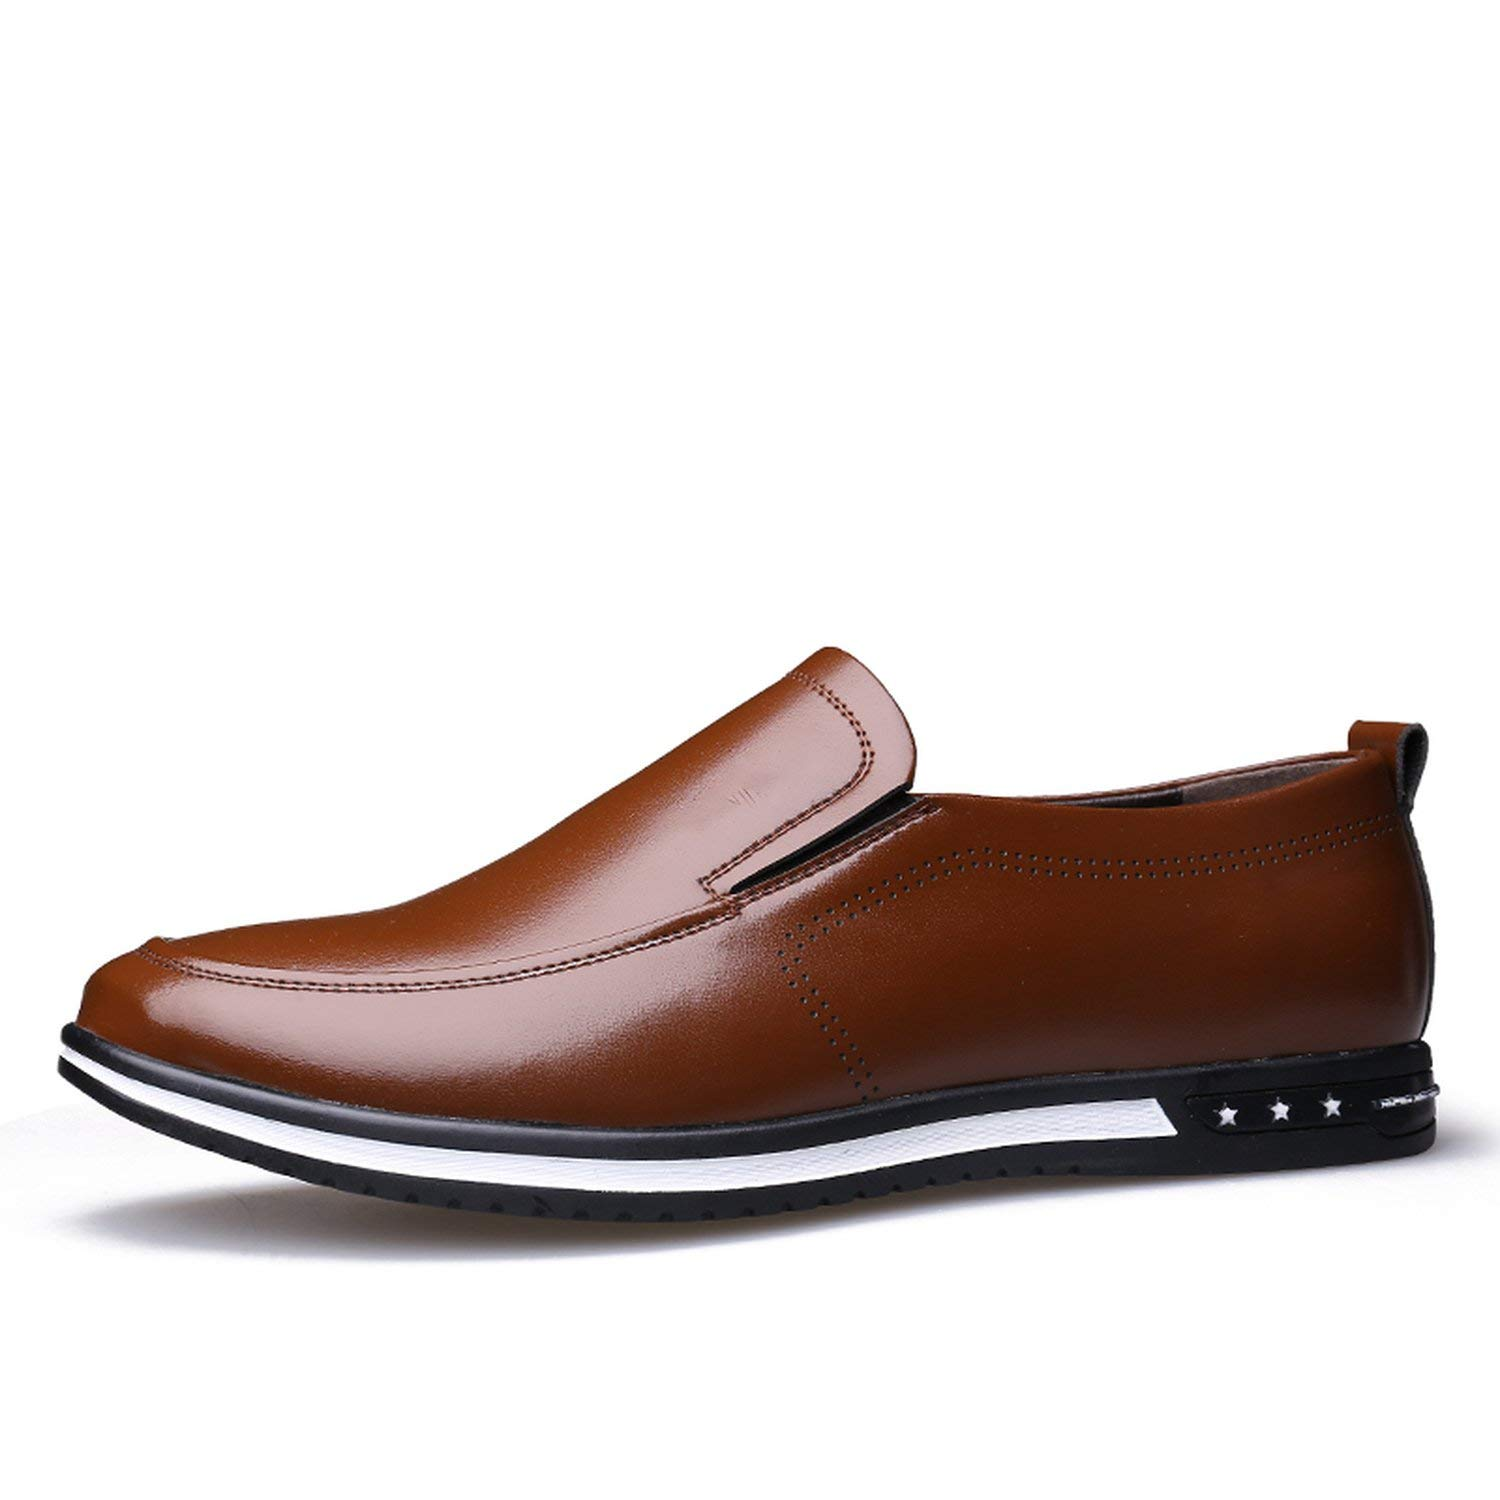 Brown no hollow OH WHY Men's shoes Casual Leather Breathable Slip on Loafers Summer shoes Man Flat Driving shoes